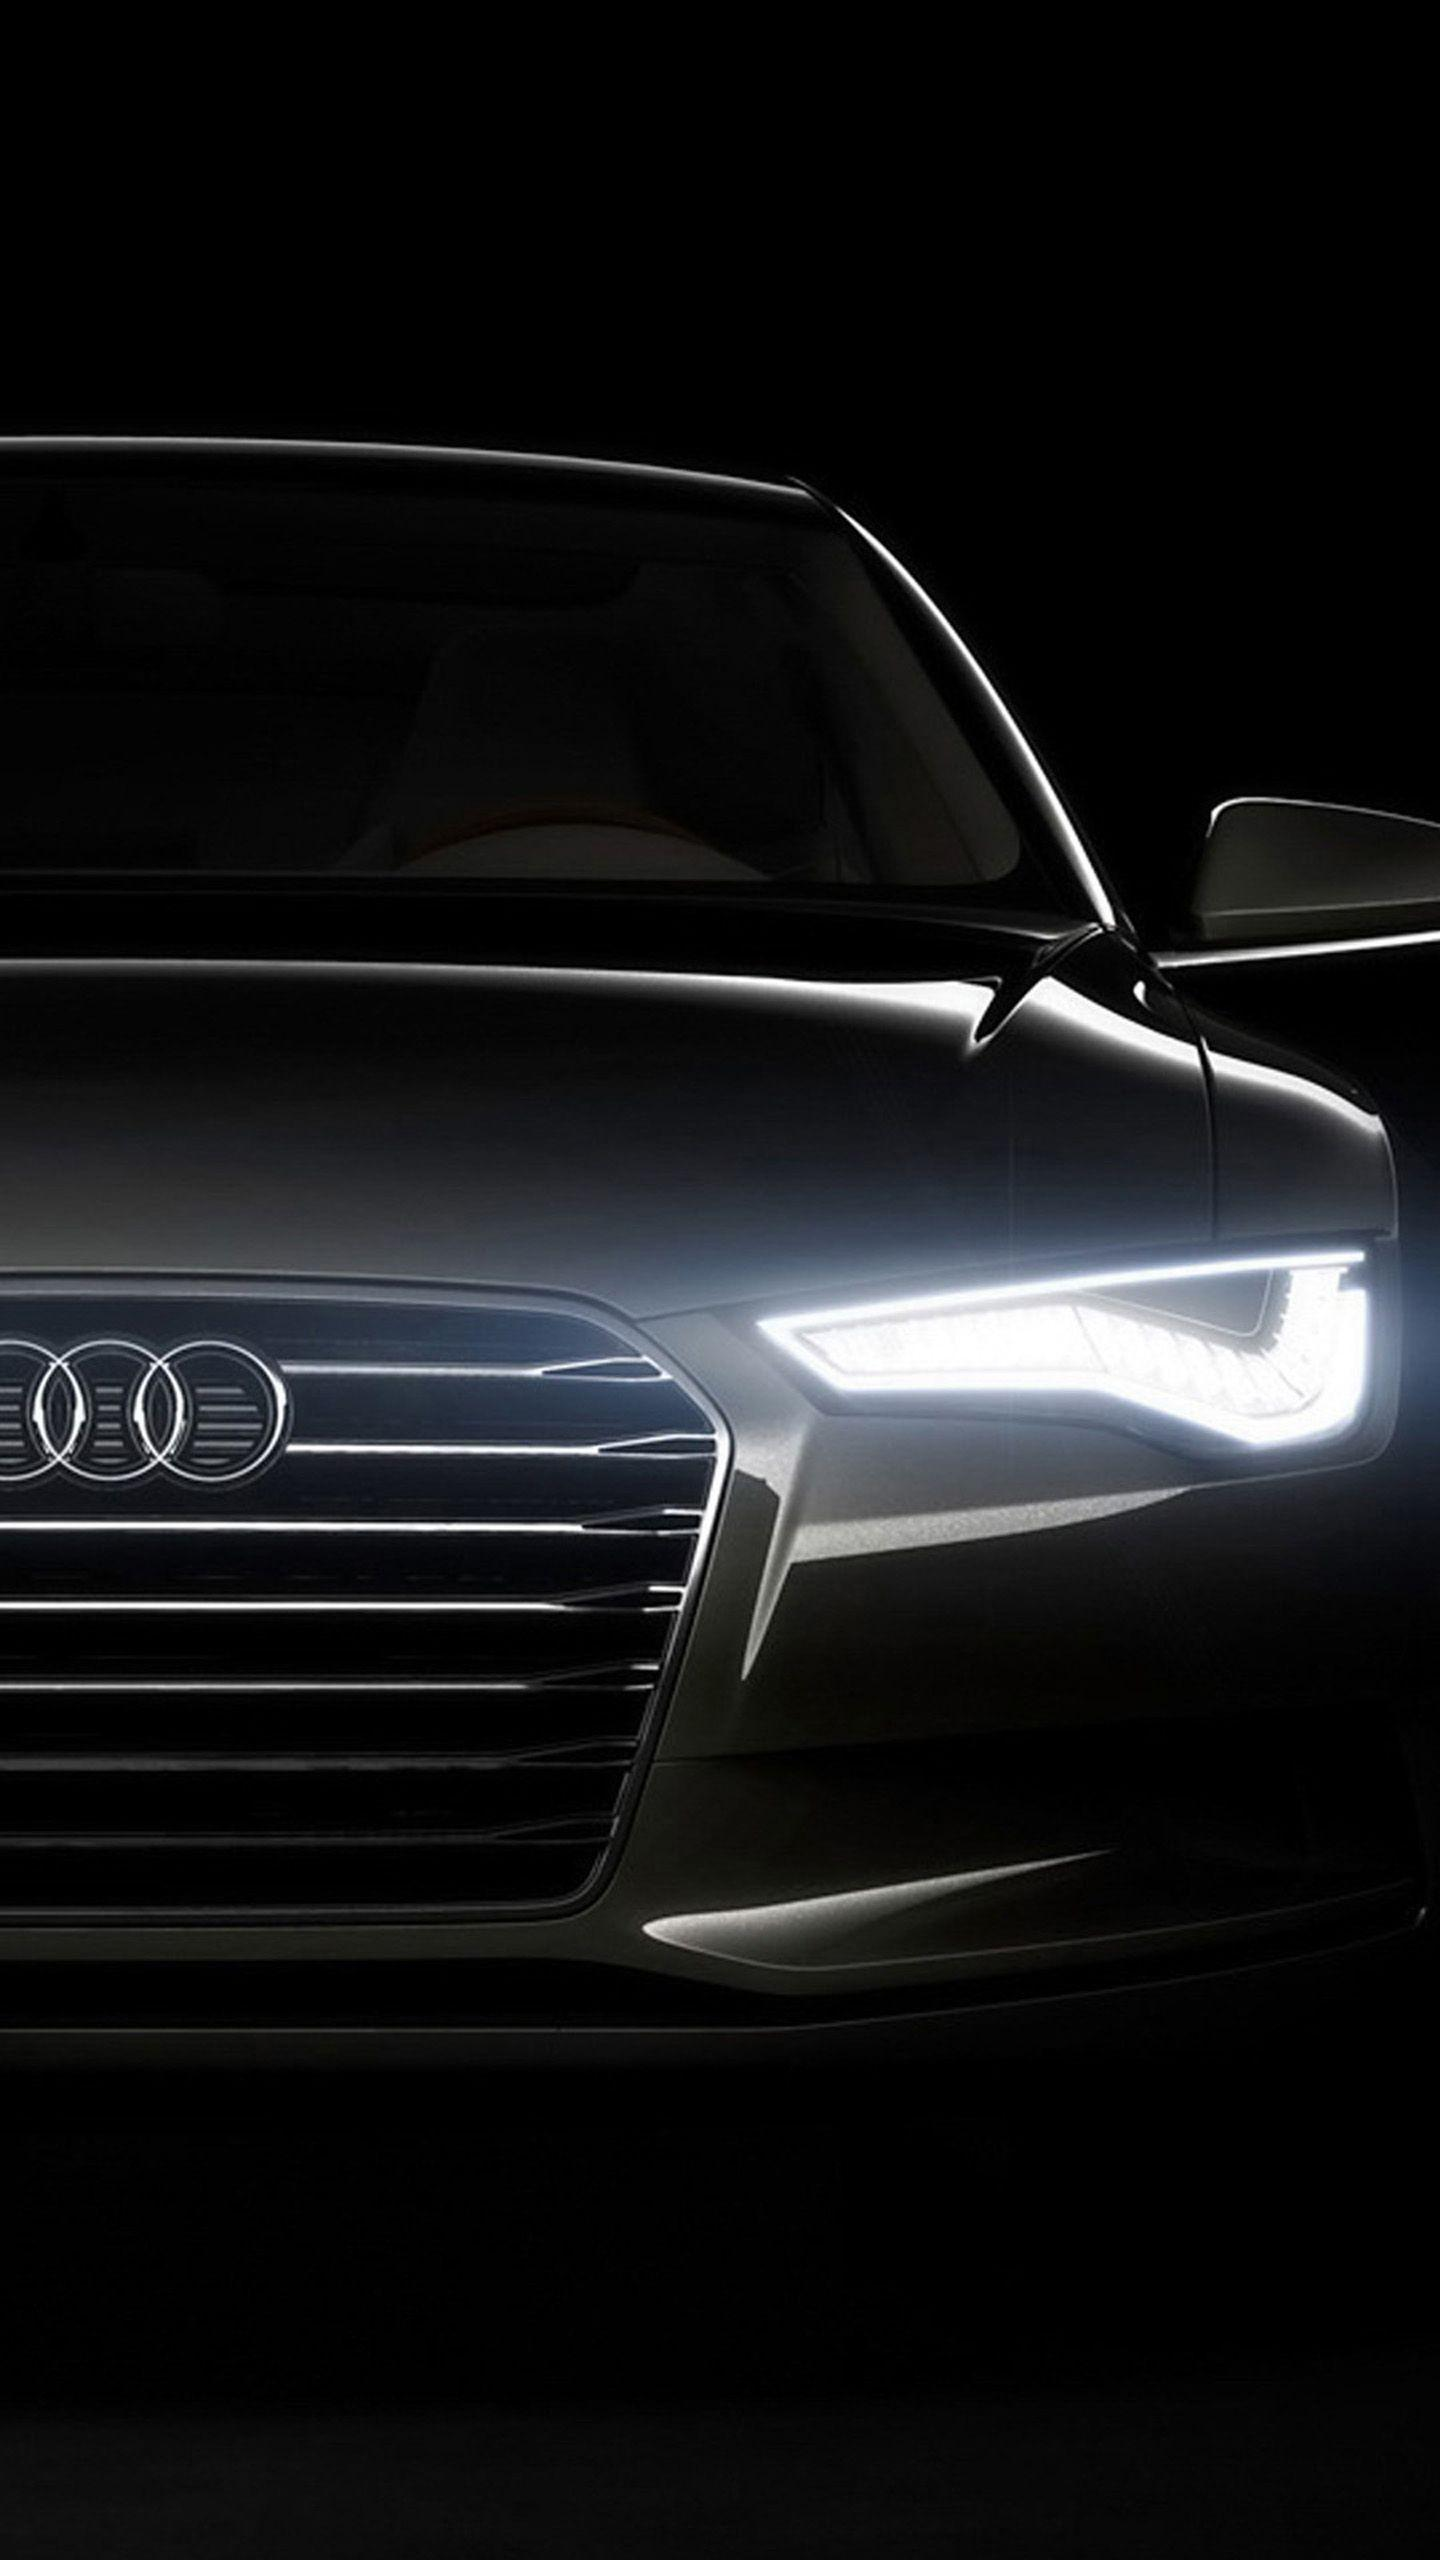 Wallpapers Samsung Galaxy S6 Audi A7 Awesome